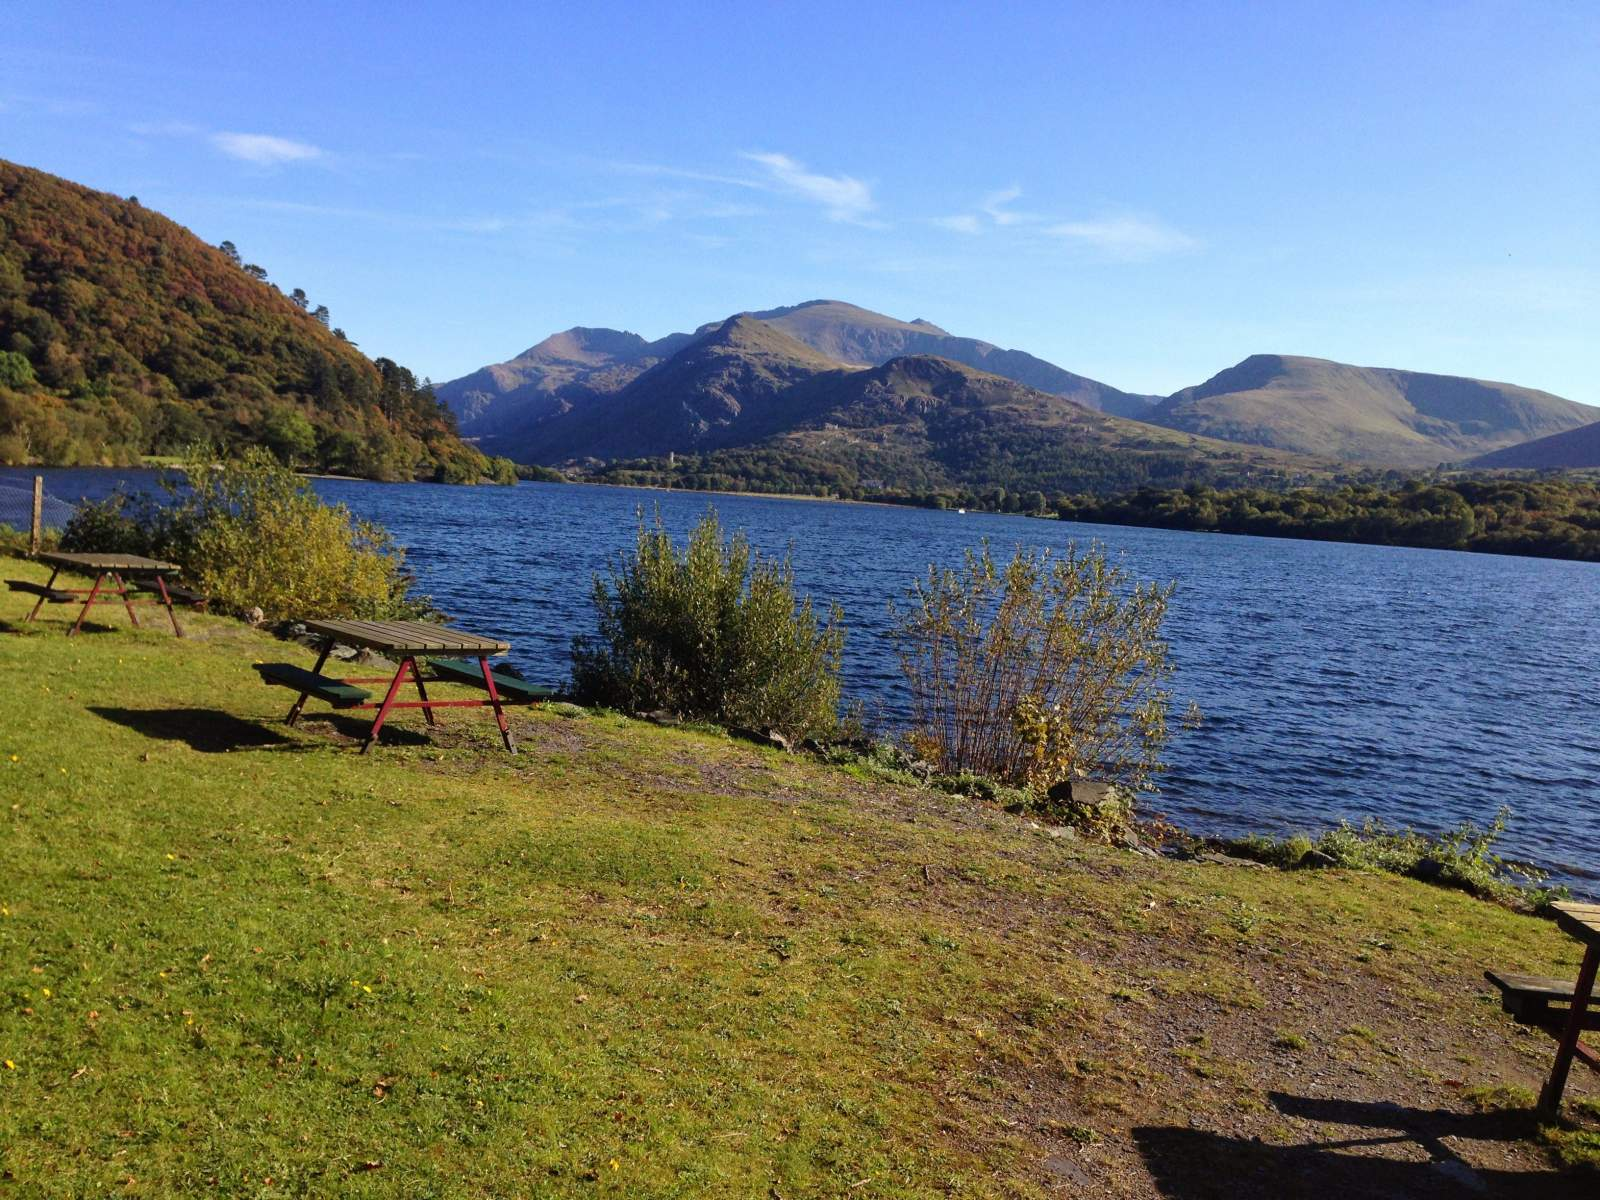 What a place for a picnic on a day out with a toddler on the llanberis lake train in wales! The station is just next to this lake and pretty spot.